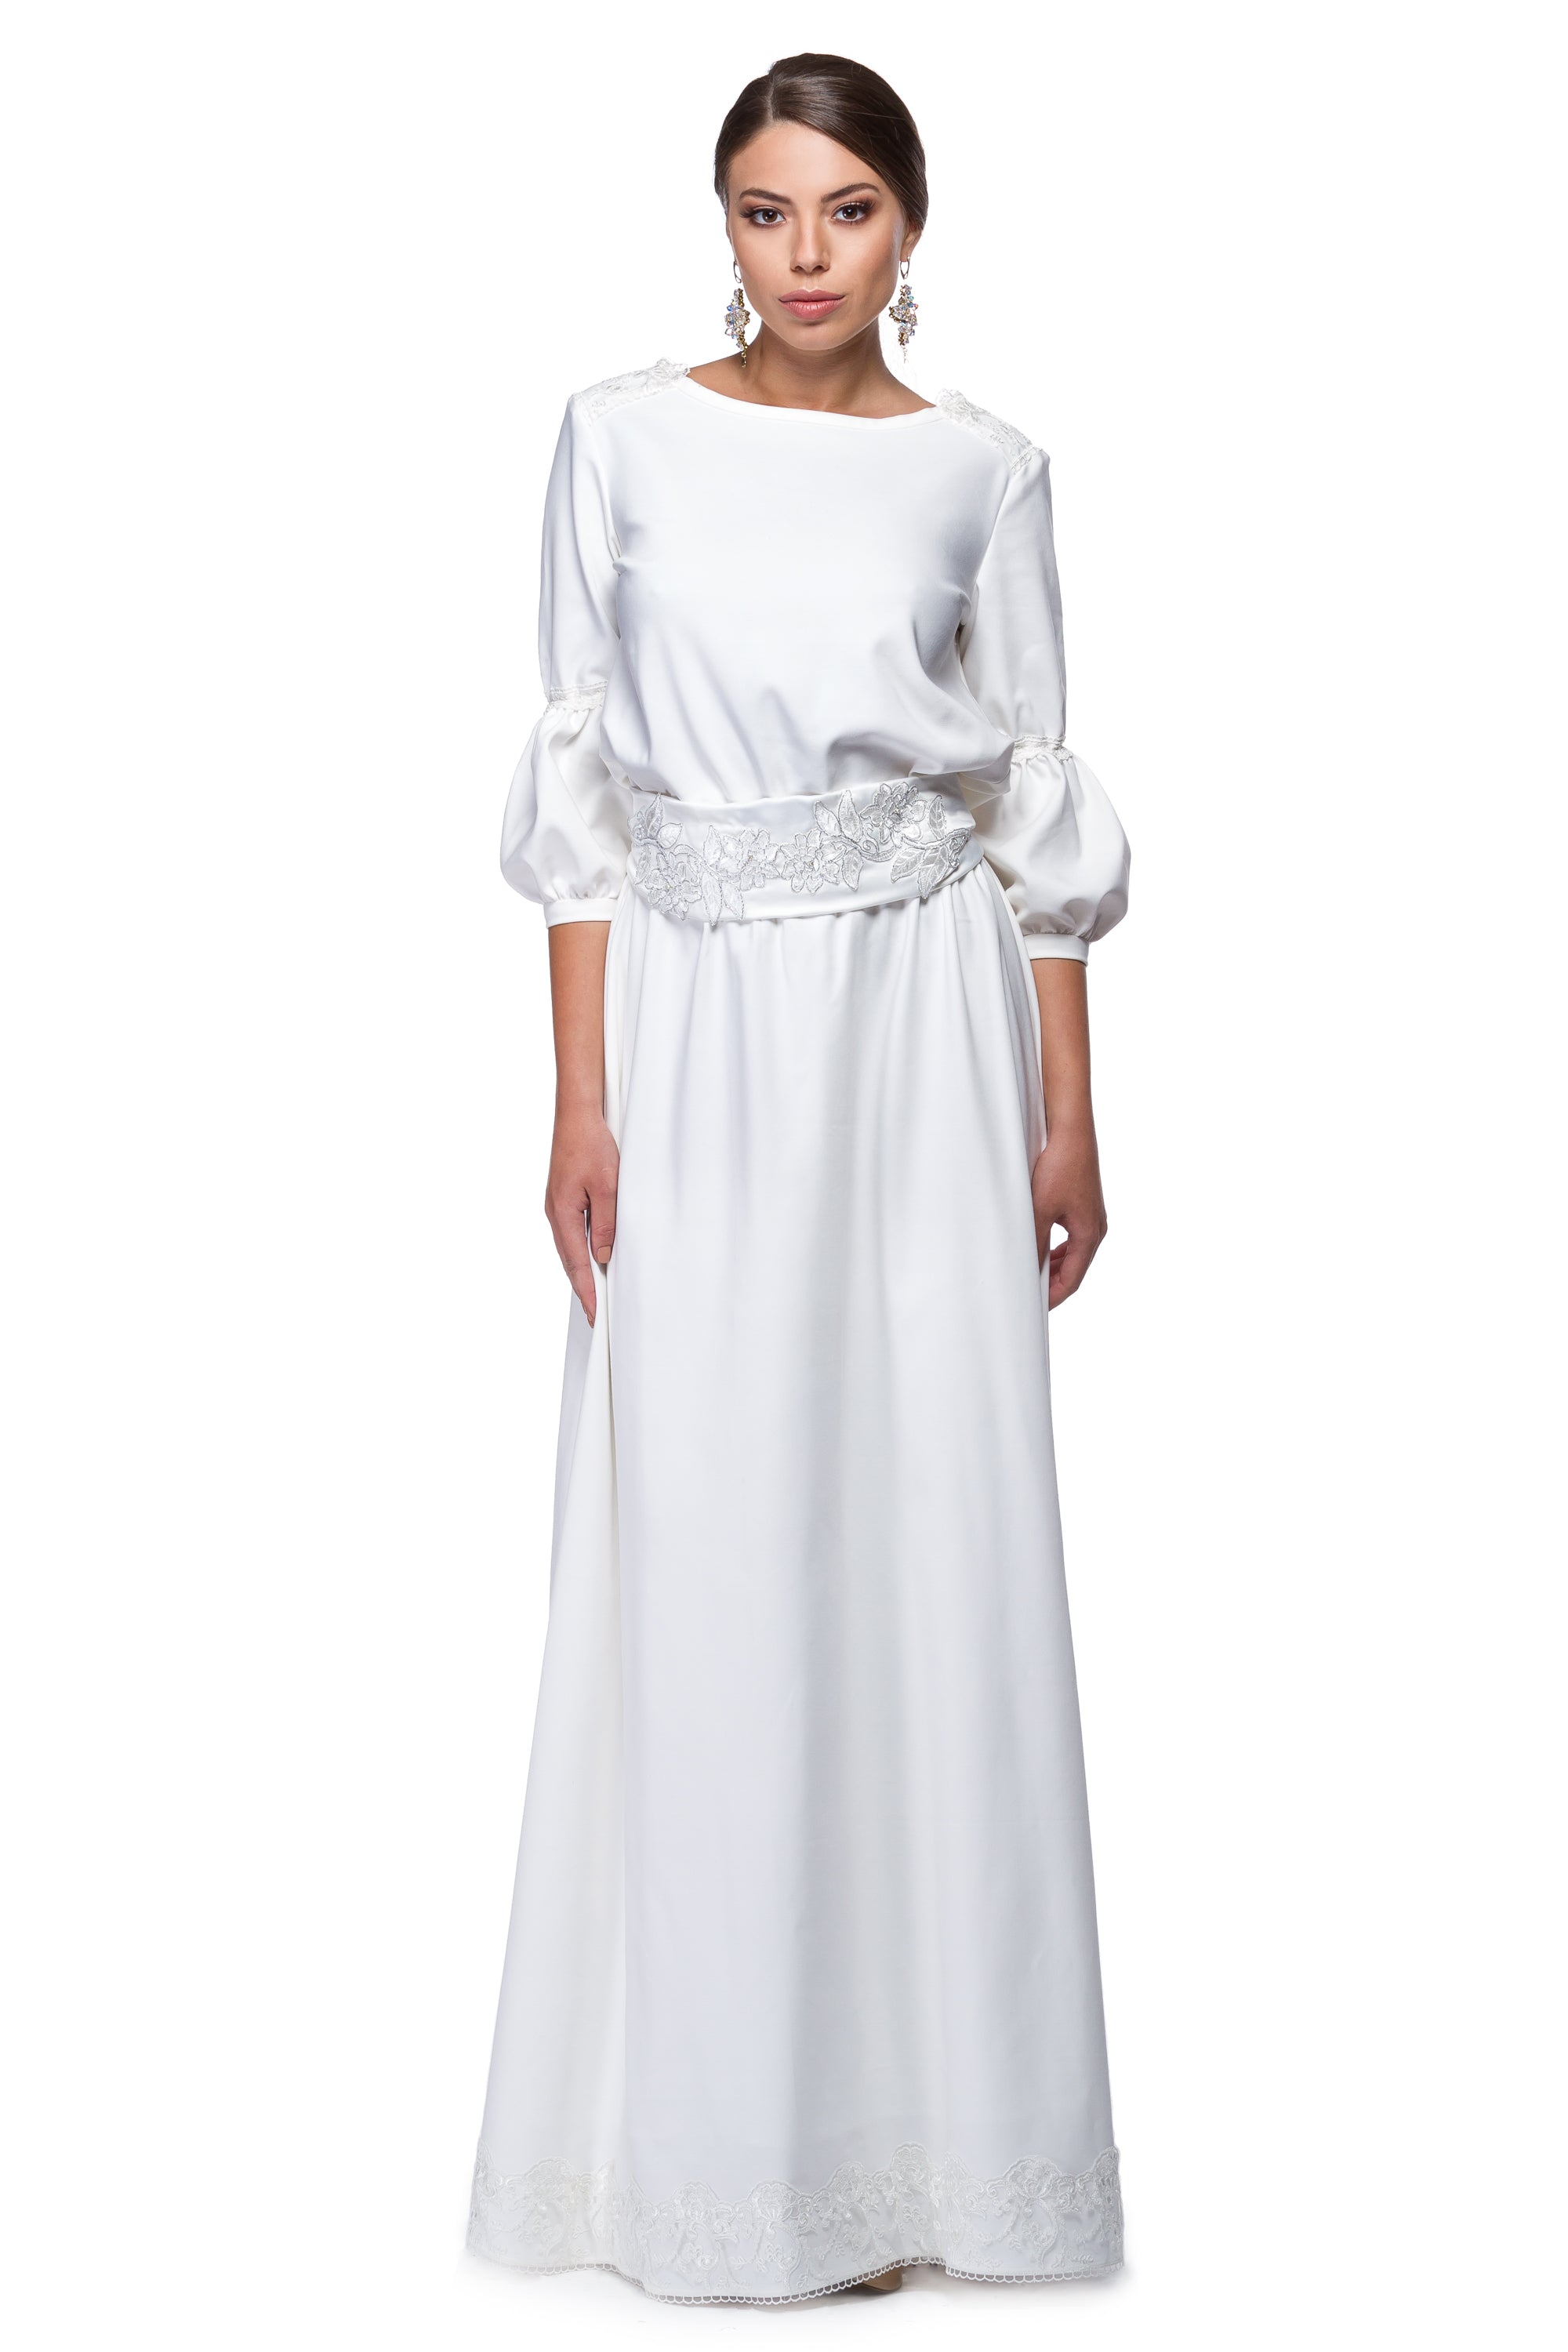 Long white dress in white and ivory WDR-0003